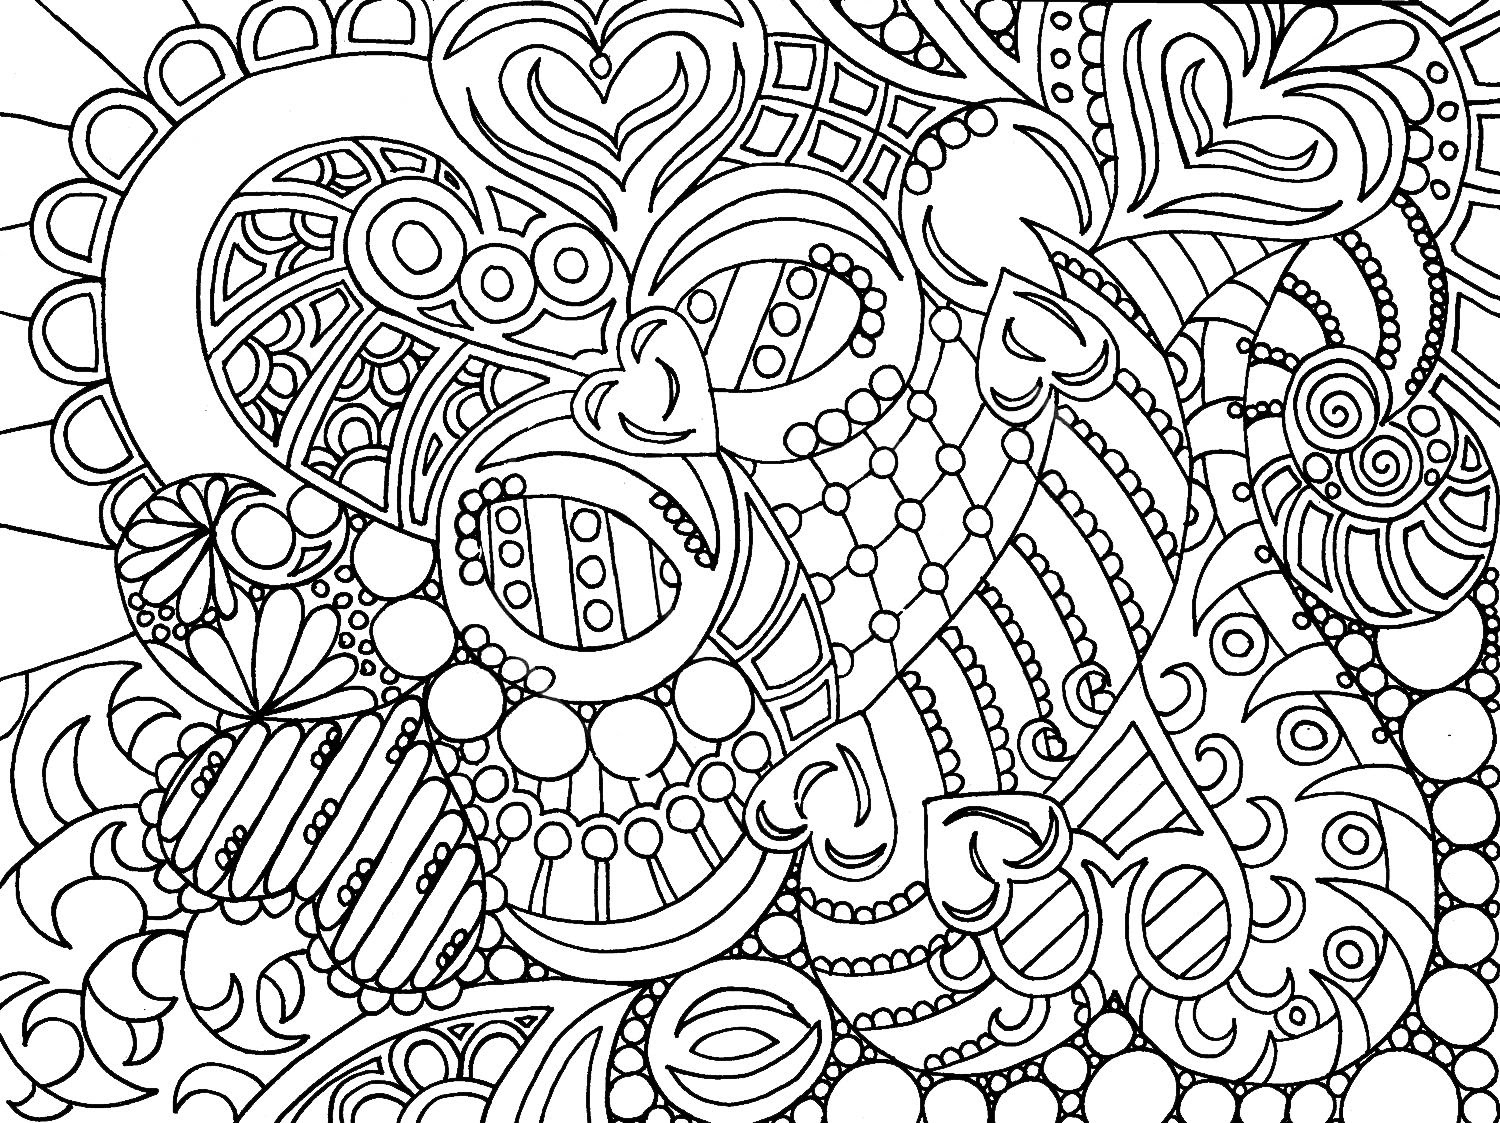 1000+ images about Mandalas, Adult Coloring Pages on Pinterest ...